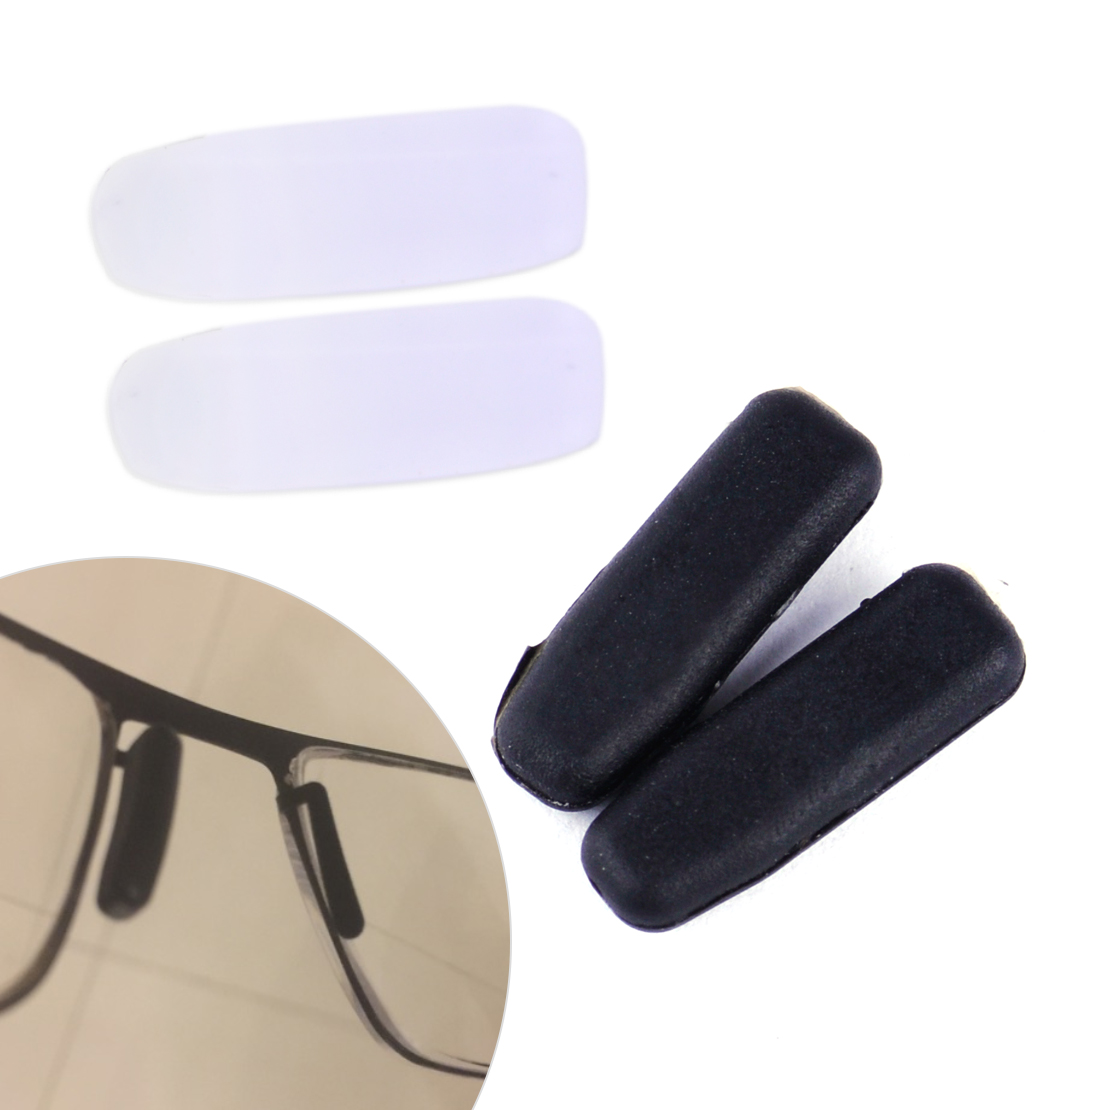 LETAOSK Two Pairs Black And White Silicone Replacement Nose Pads Health Care Kit Fit For IC! Berlin Sunglasses Parts Accessories